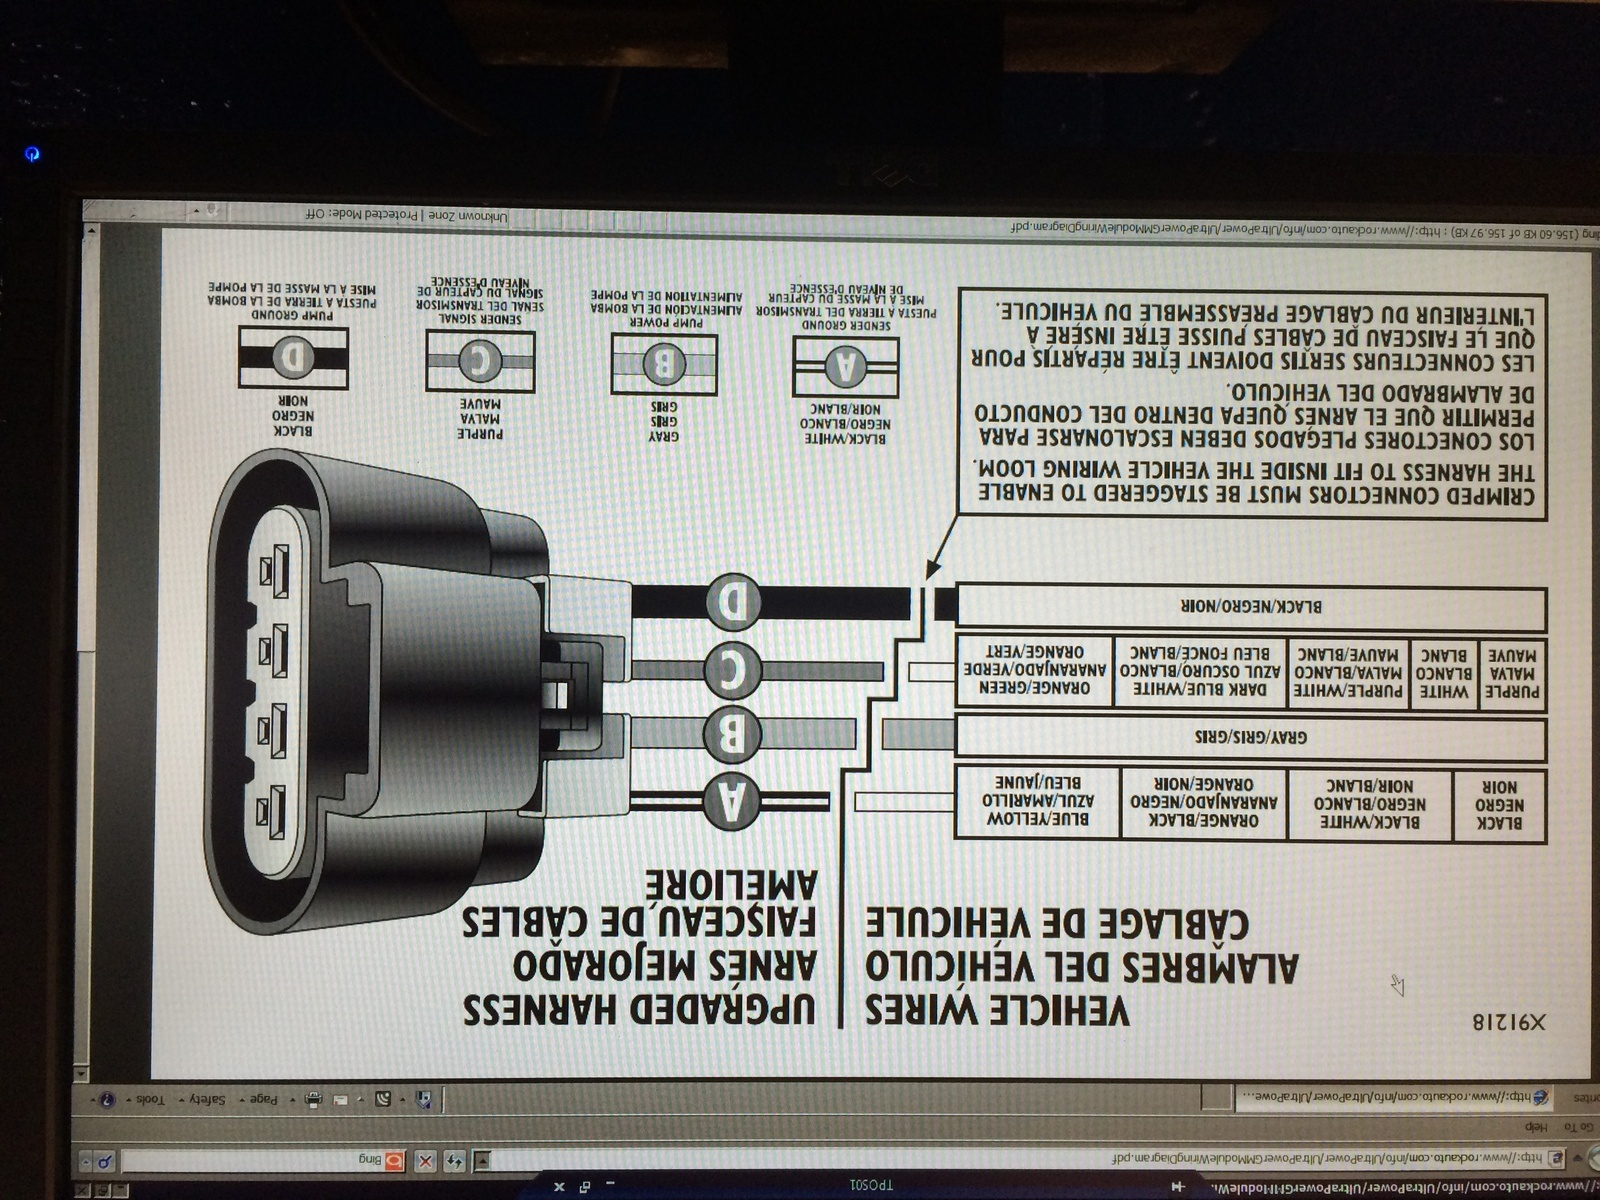 2000 GMC Sierra 1500 Fuel Pump Wiring Diagram Schematics. GMC Sierra 1500  Questions Fuel Pump